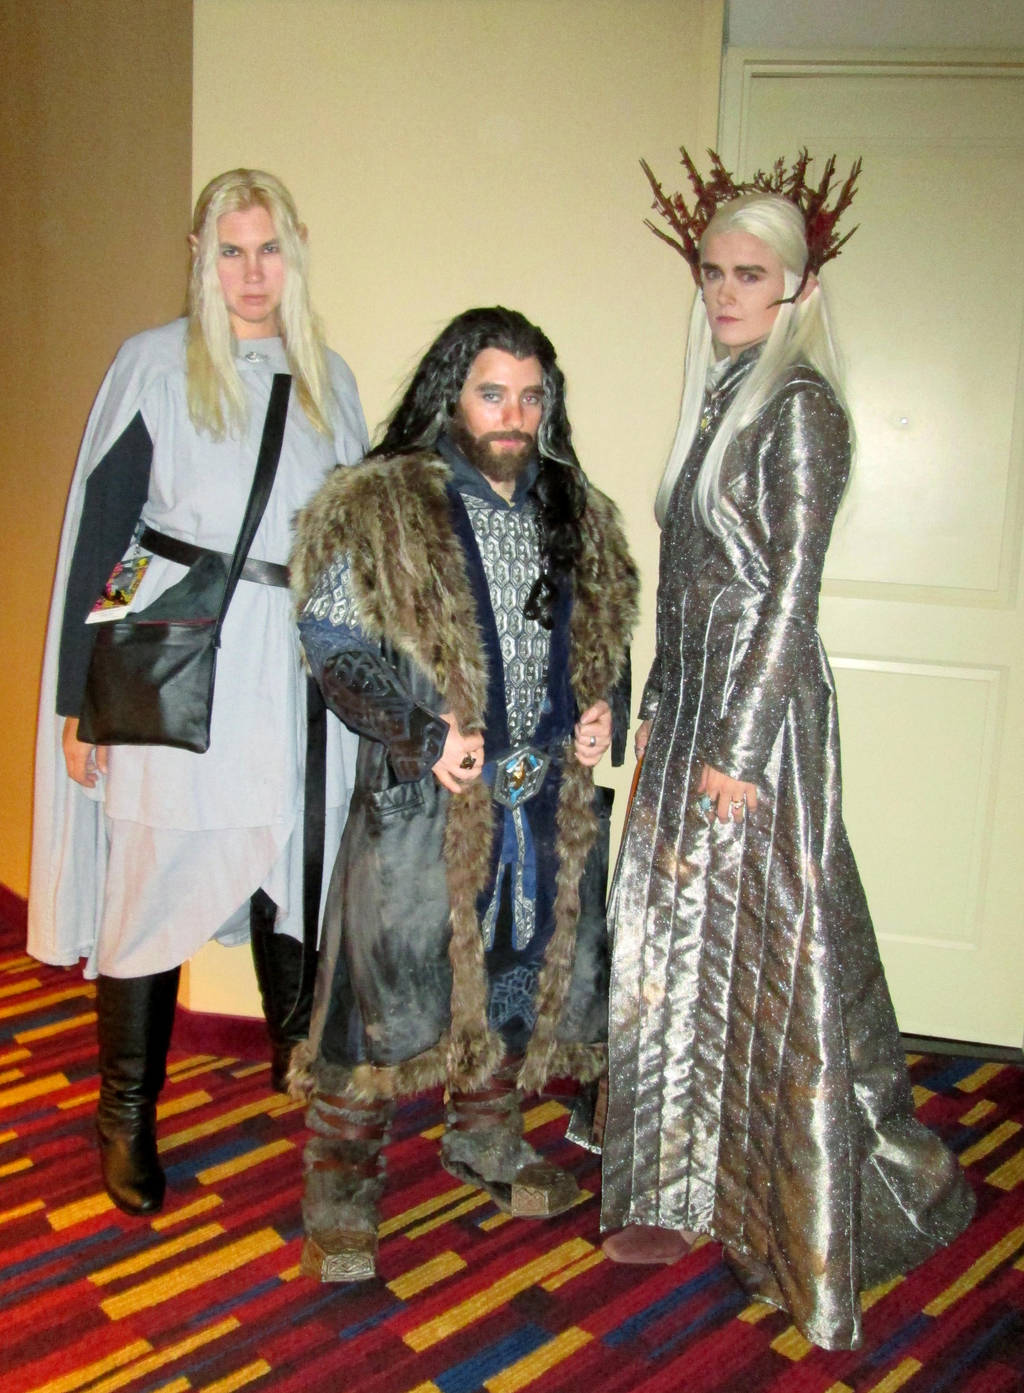 Thorin Oakenshield and his elf posse by damnitsasha